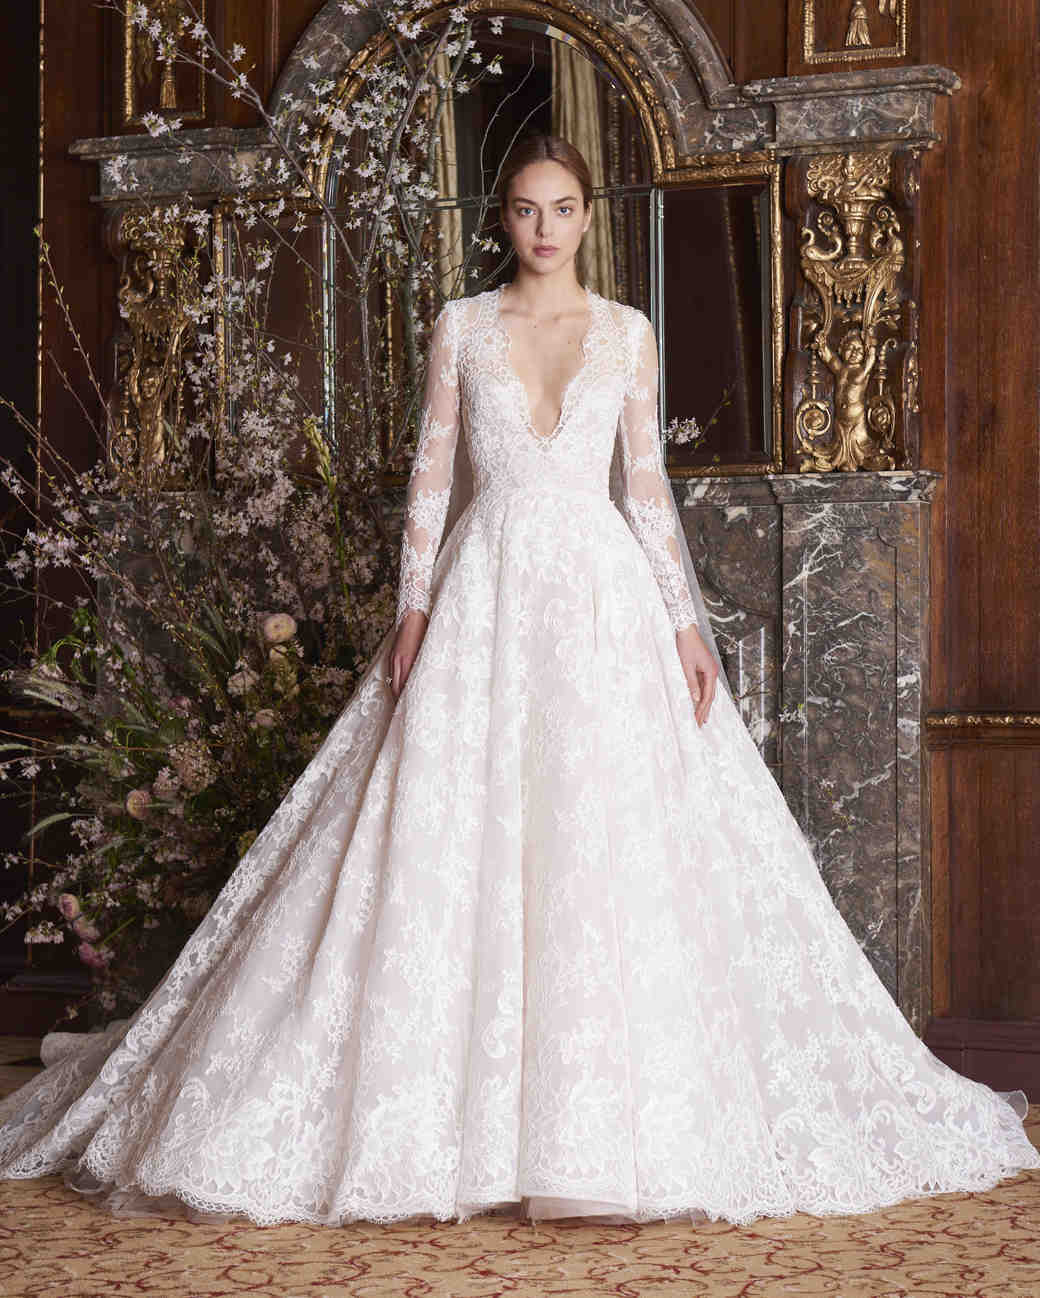 Long sleeved wedding dresses we love martha stewart weddings monique lhuillier wedding dress spring 2019 v neck long sleeve junglespirit